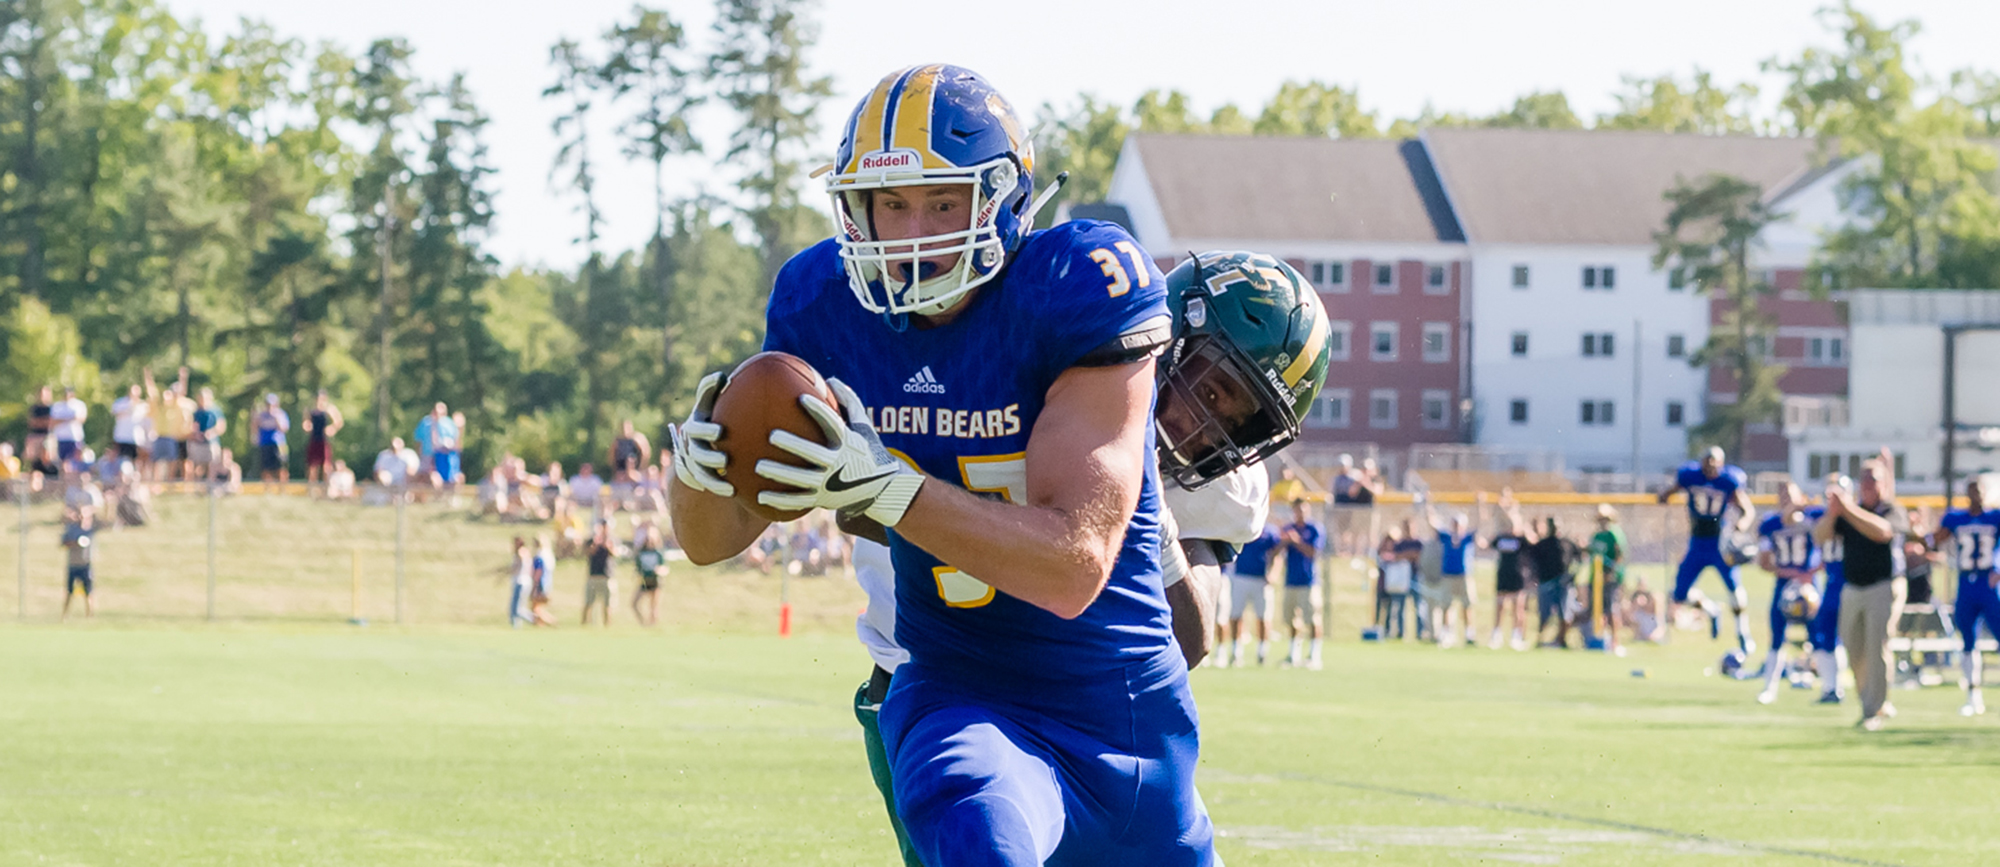 Sophomore tight end Josh Henry's 28-yard touchdown reception with less than a minute remaining capped Western New England's 21-14, comeback victory over Husson University on Saturday. (Photo by Bryan Hewitt)